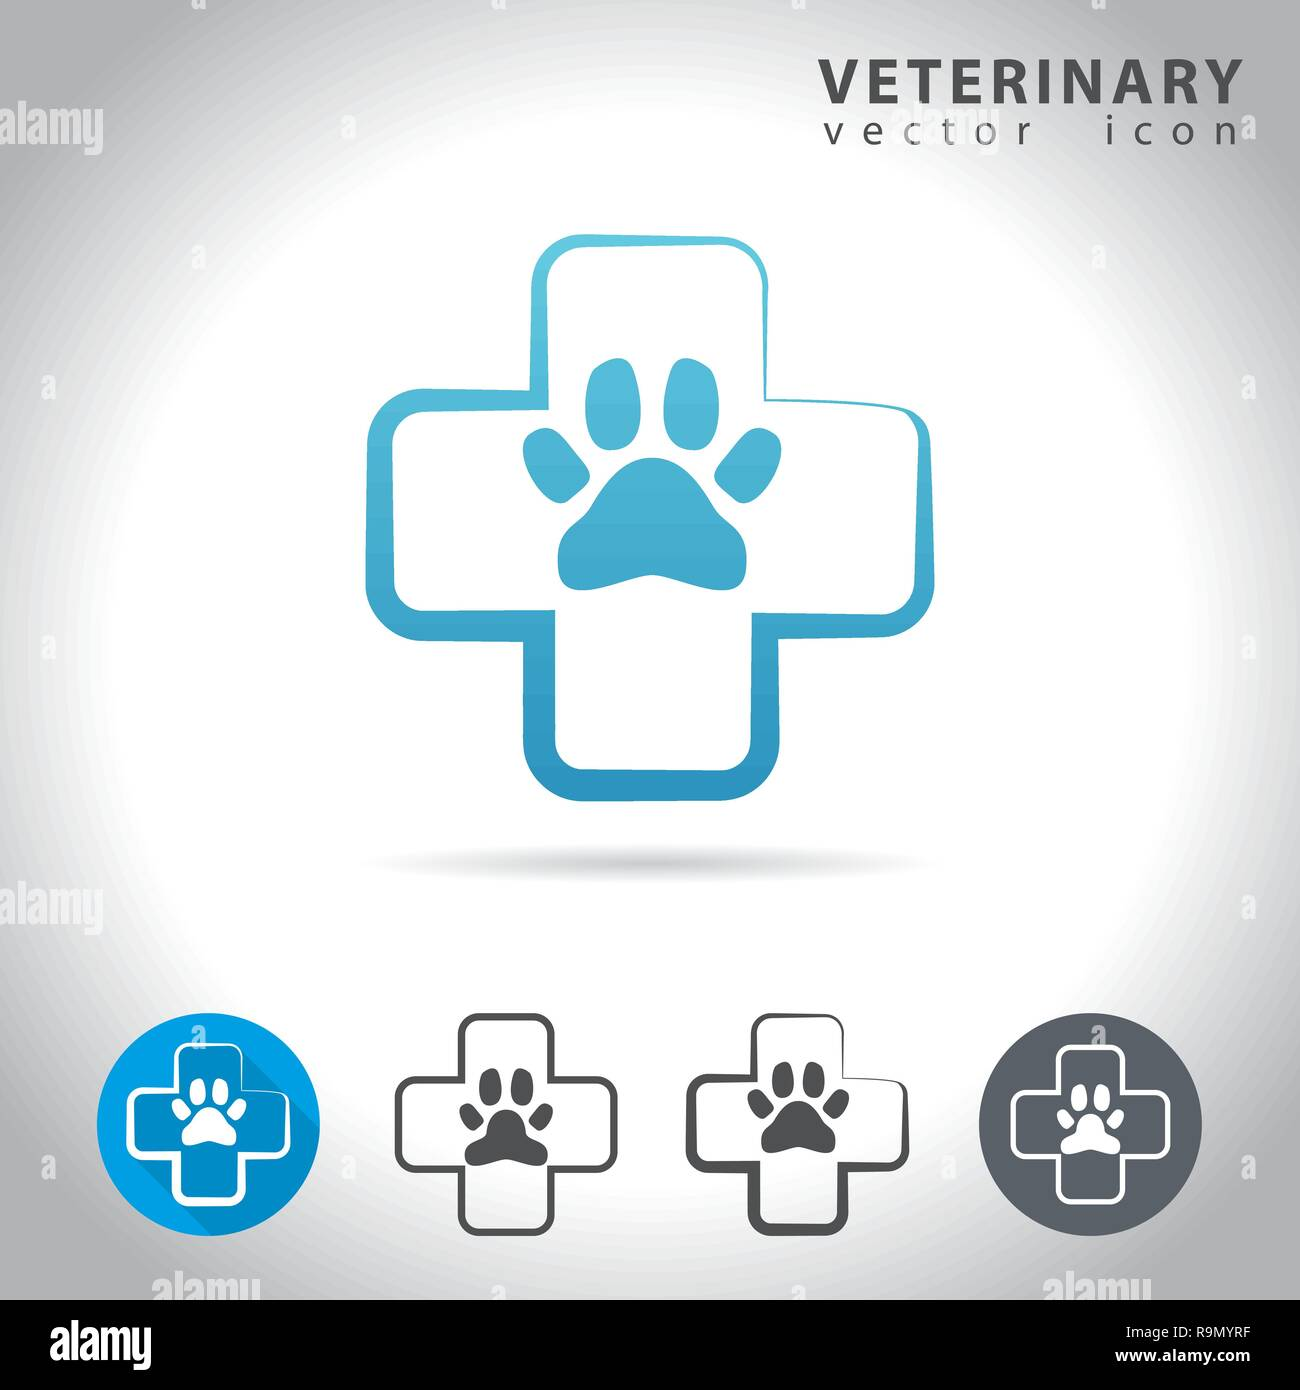 Veterinary icon set, collection of pet health icons, vector illustration - Stock Image